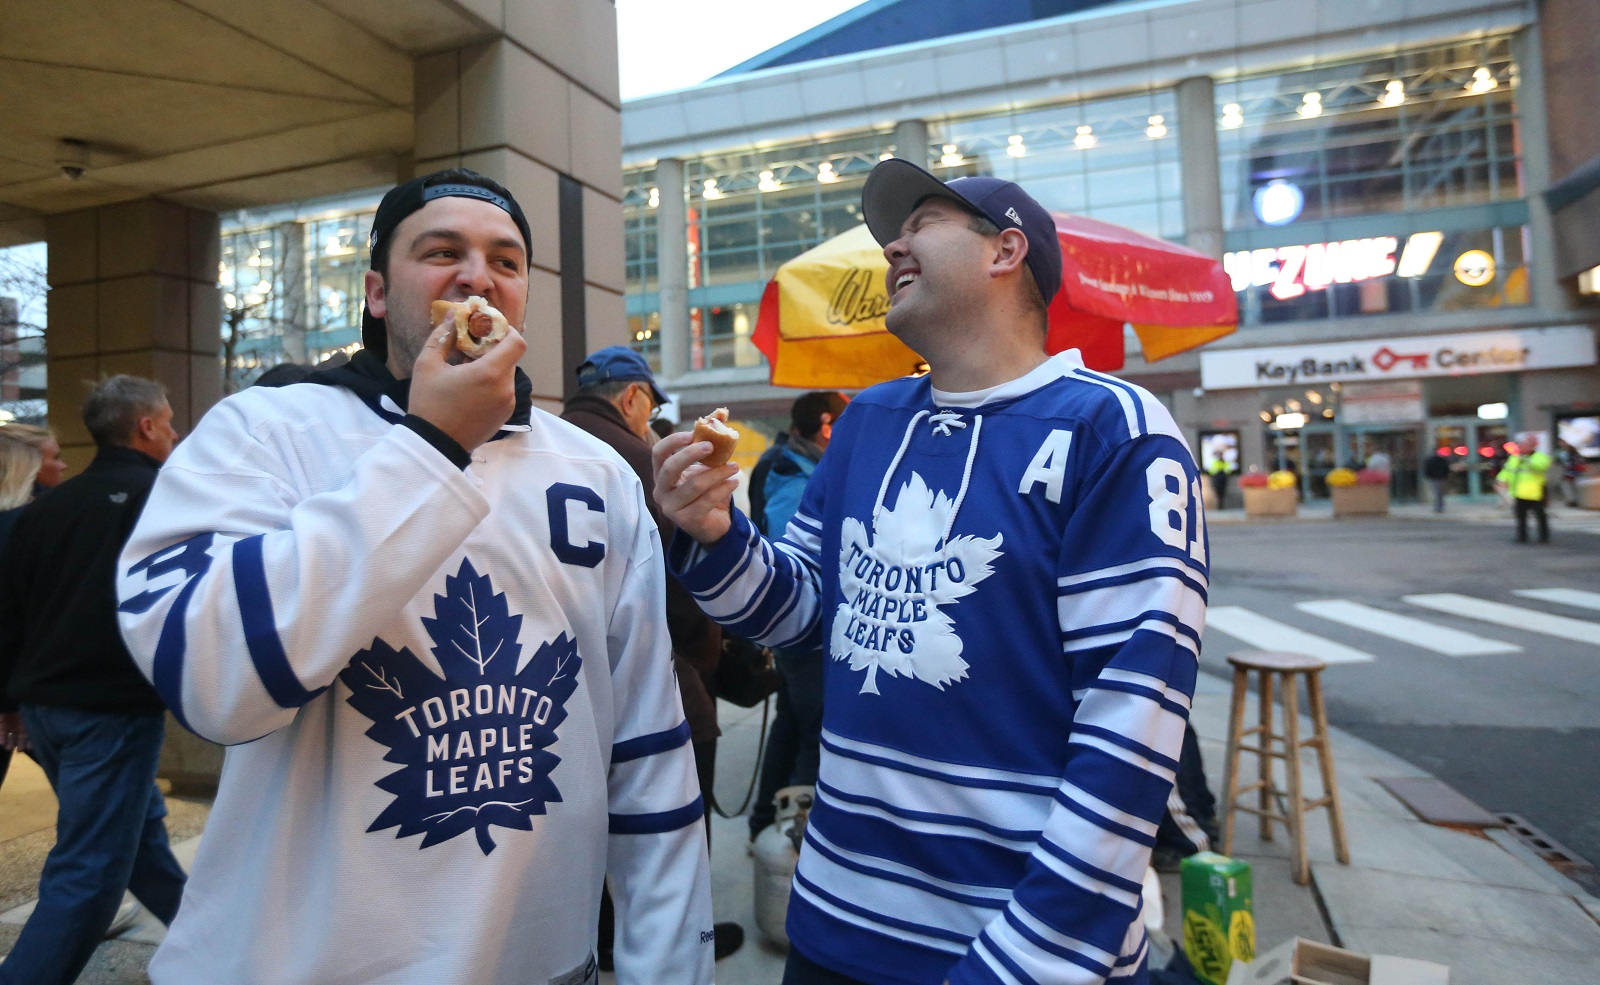 Leafs fans Matthew Salewski, left, and Shawn Wilson, of Niagara Falls, Ontario, have some hotdogs before going into the game. They prefer to attend Leafs games in Buffalo at a fraction of the cost to ones in Toronto. (Sharon Cantillon/Buffalo News)